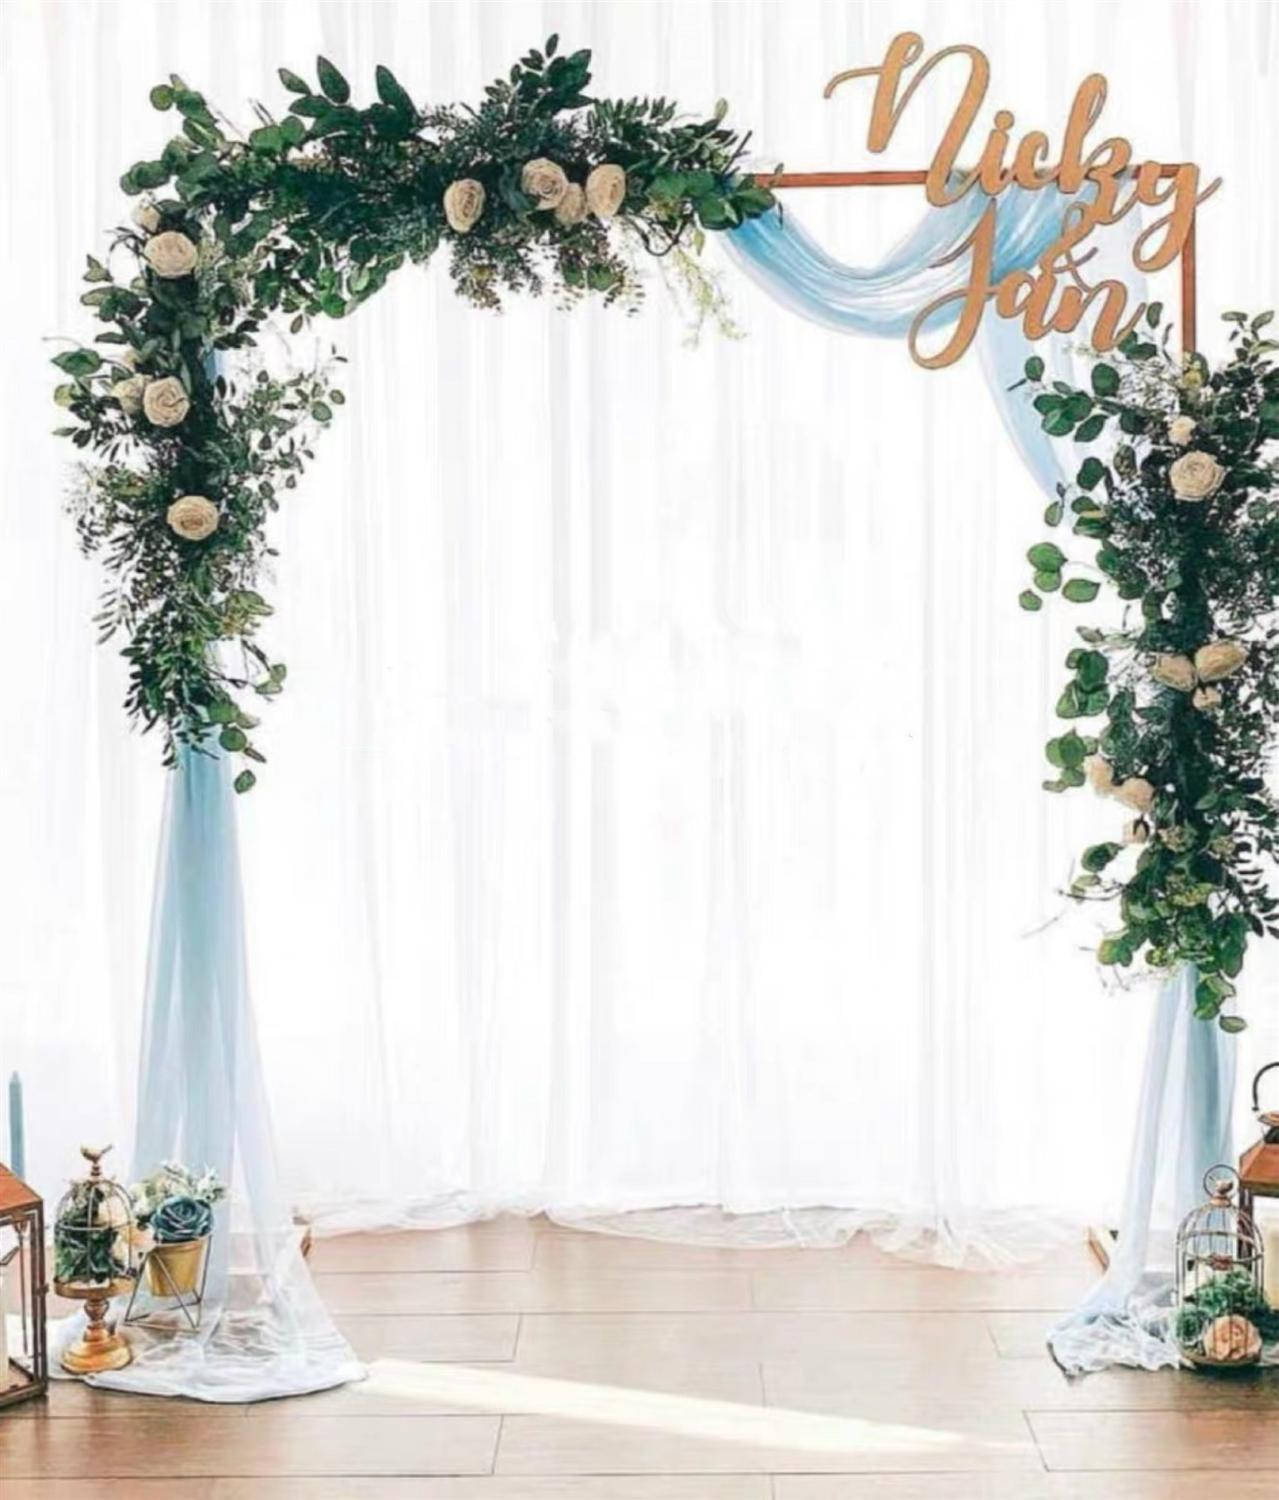 Wedding Props  Stage Backgdrop Frame Wrought Iron Decorative Flower Stand Birthday Party Wedding Decoration Quare Arch